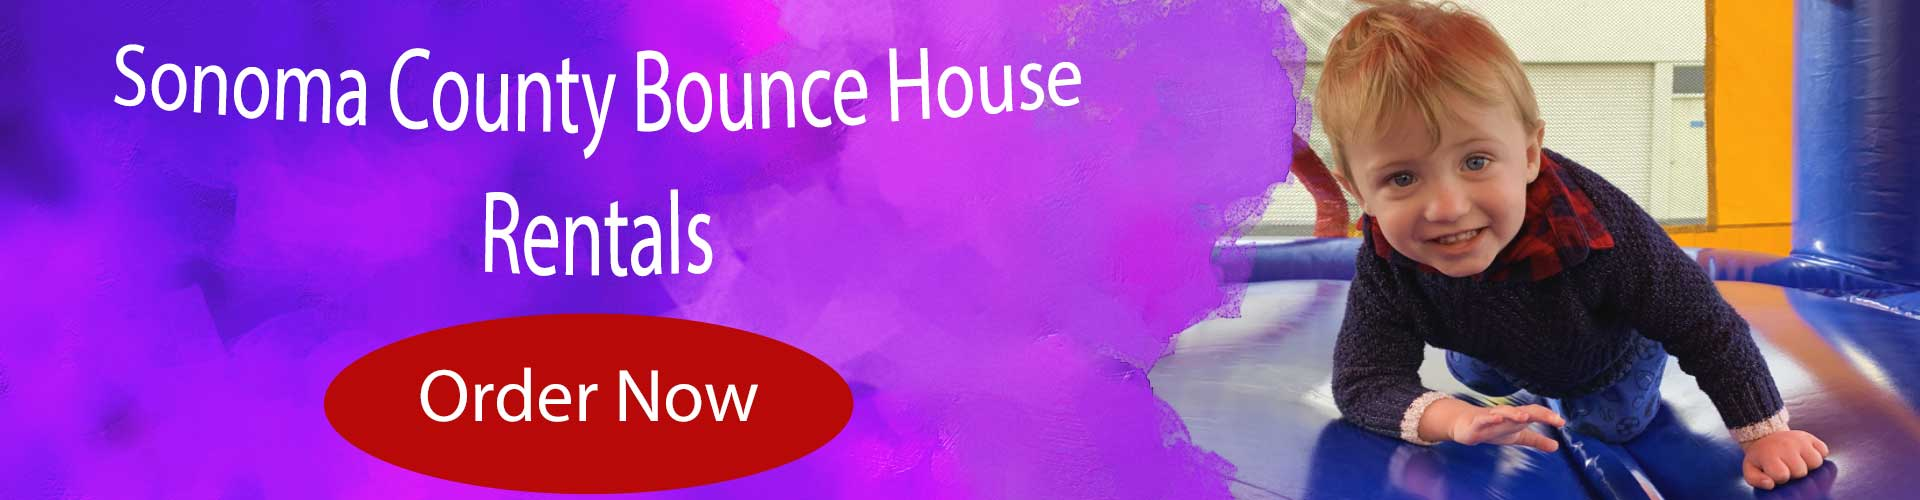 Order Your Bounce House Now